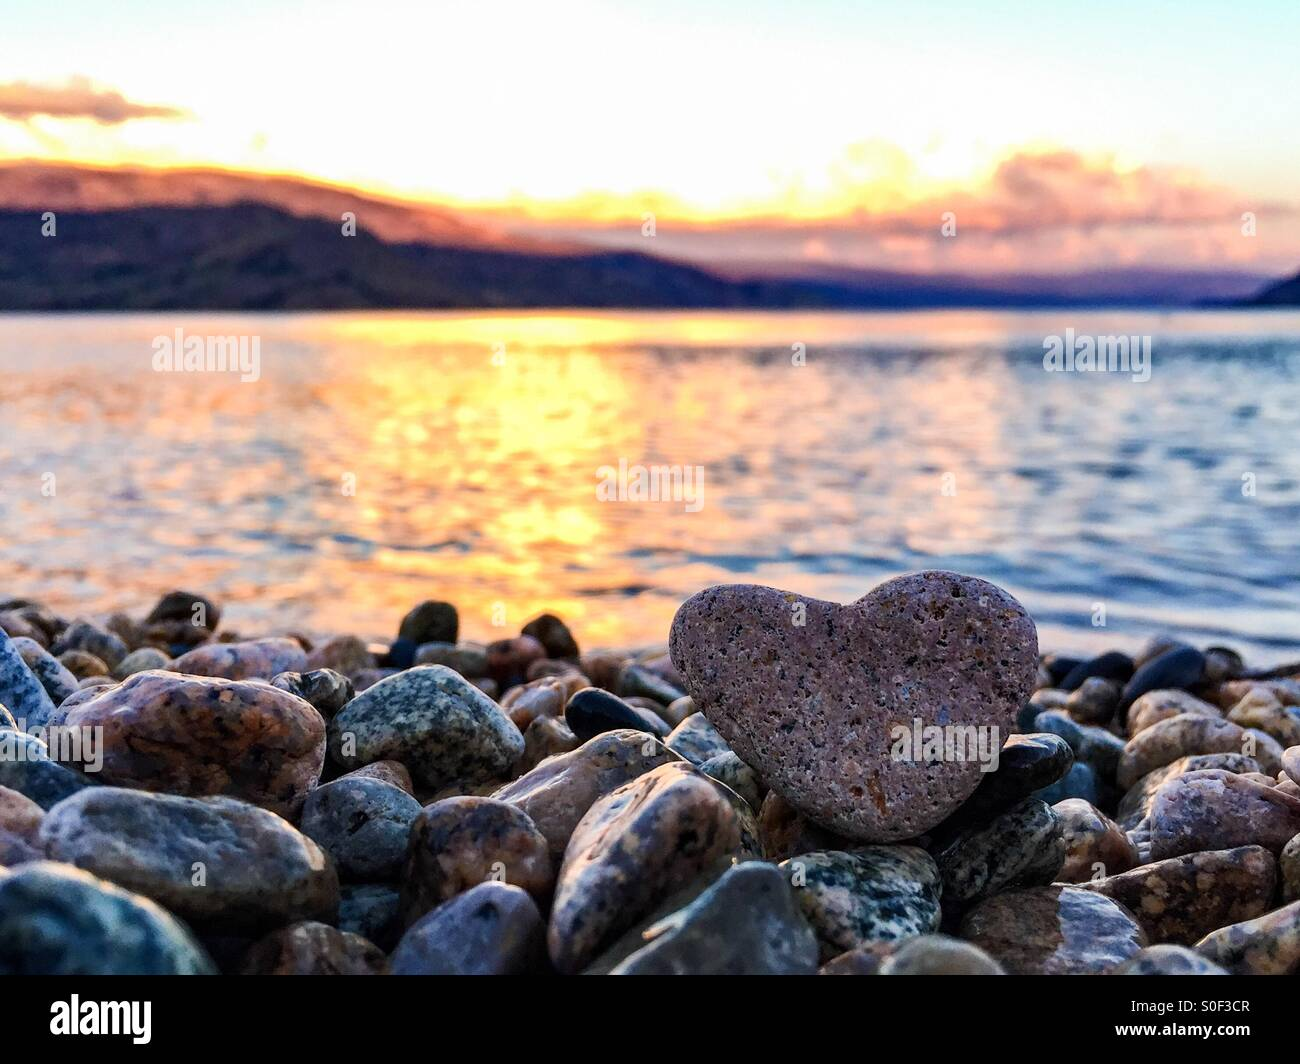 Summer love. Heart shaped rock on the beach with lake and mountains in the background at sunset offer a romantic - Stock Image